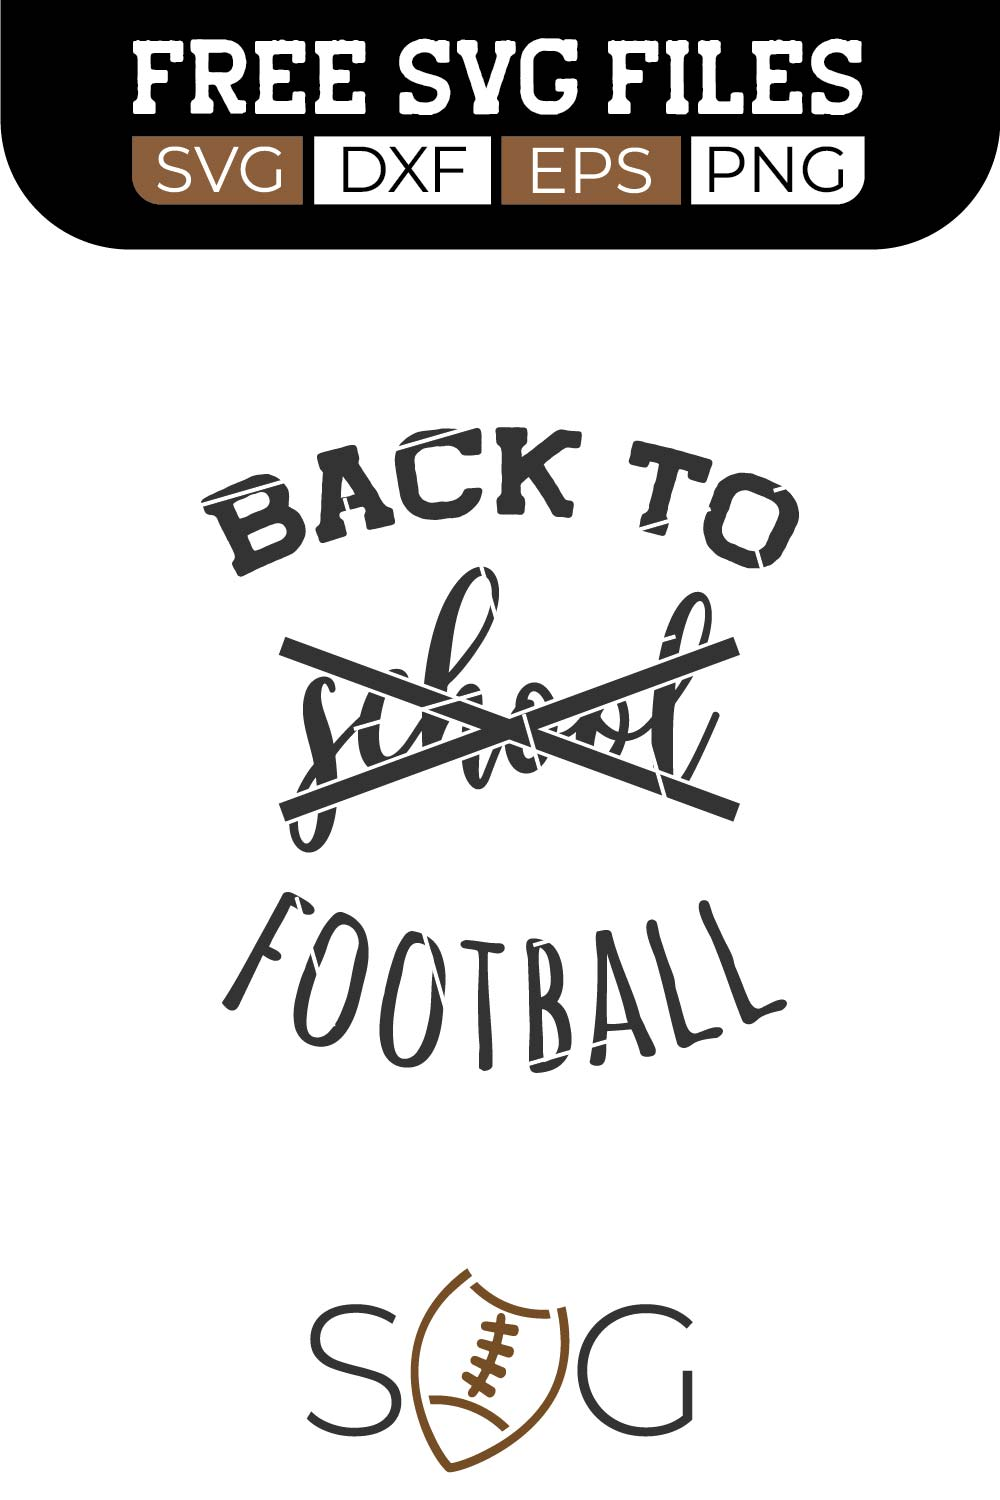 football svg, football svg free, football svg download, football print svg, football cut svg, football digital,